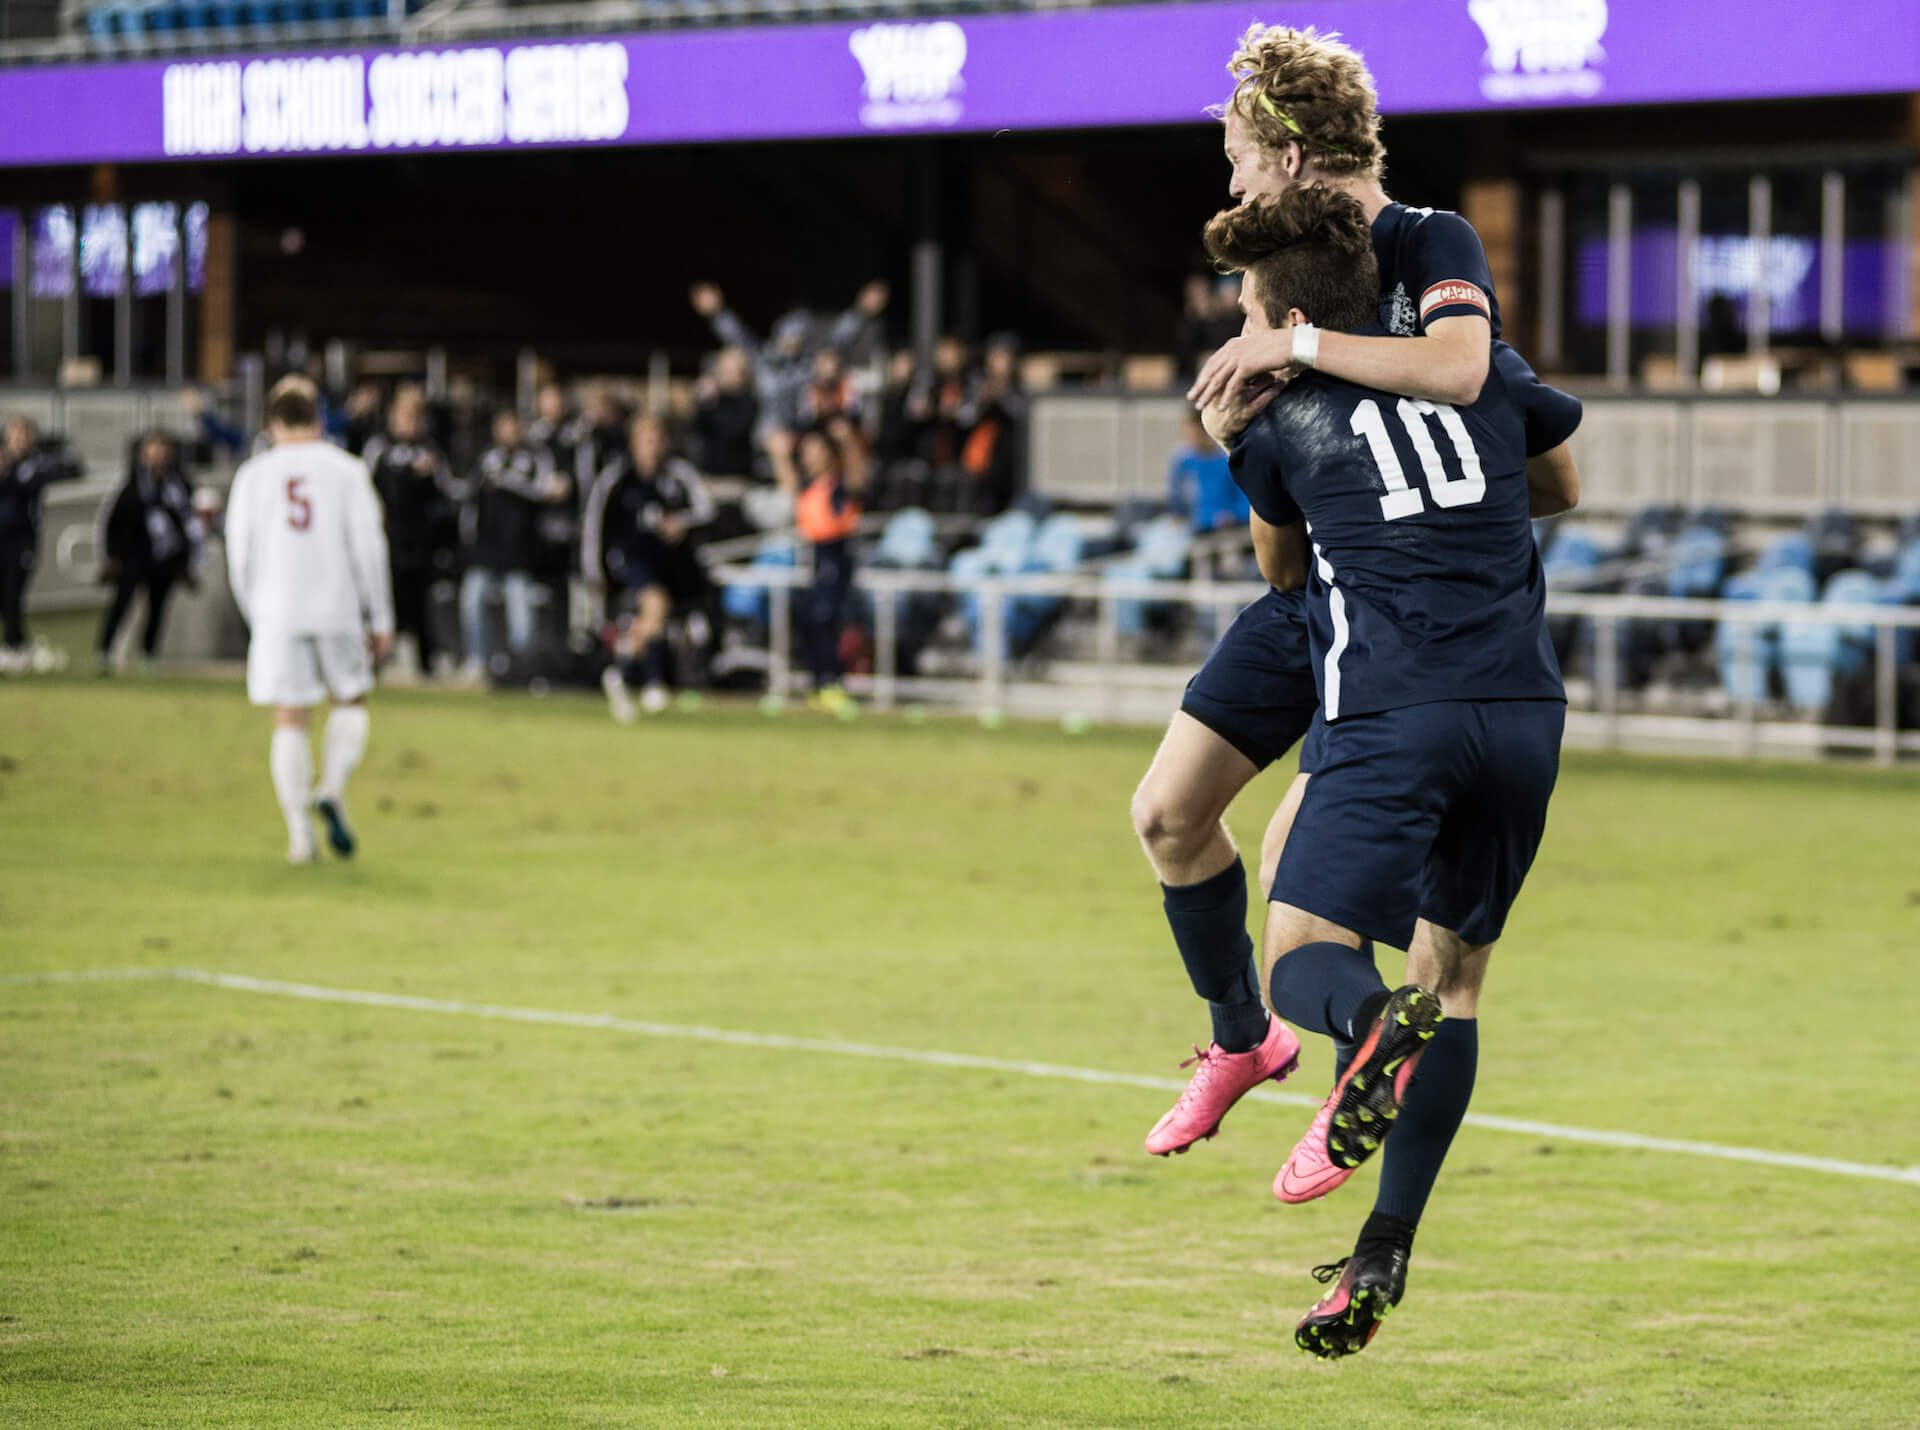 Fitzpatrick and Avetian celebrate shortly after their team takes a 1-0 lead.